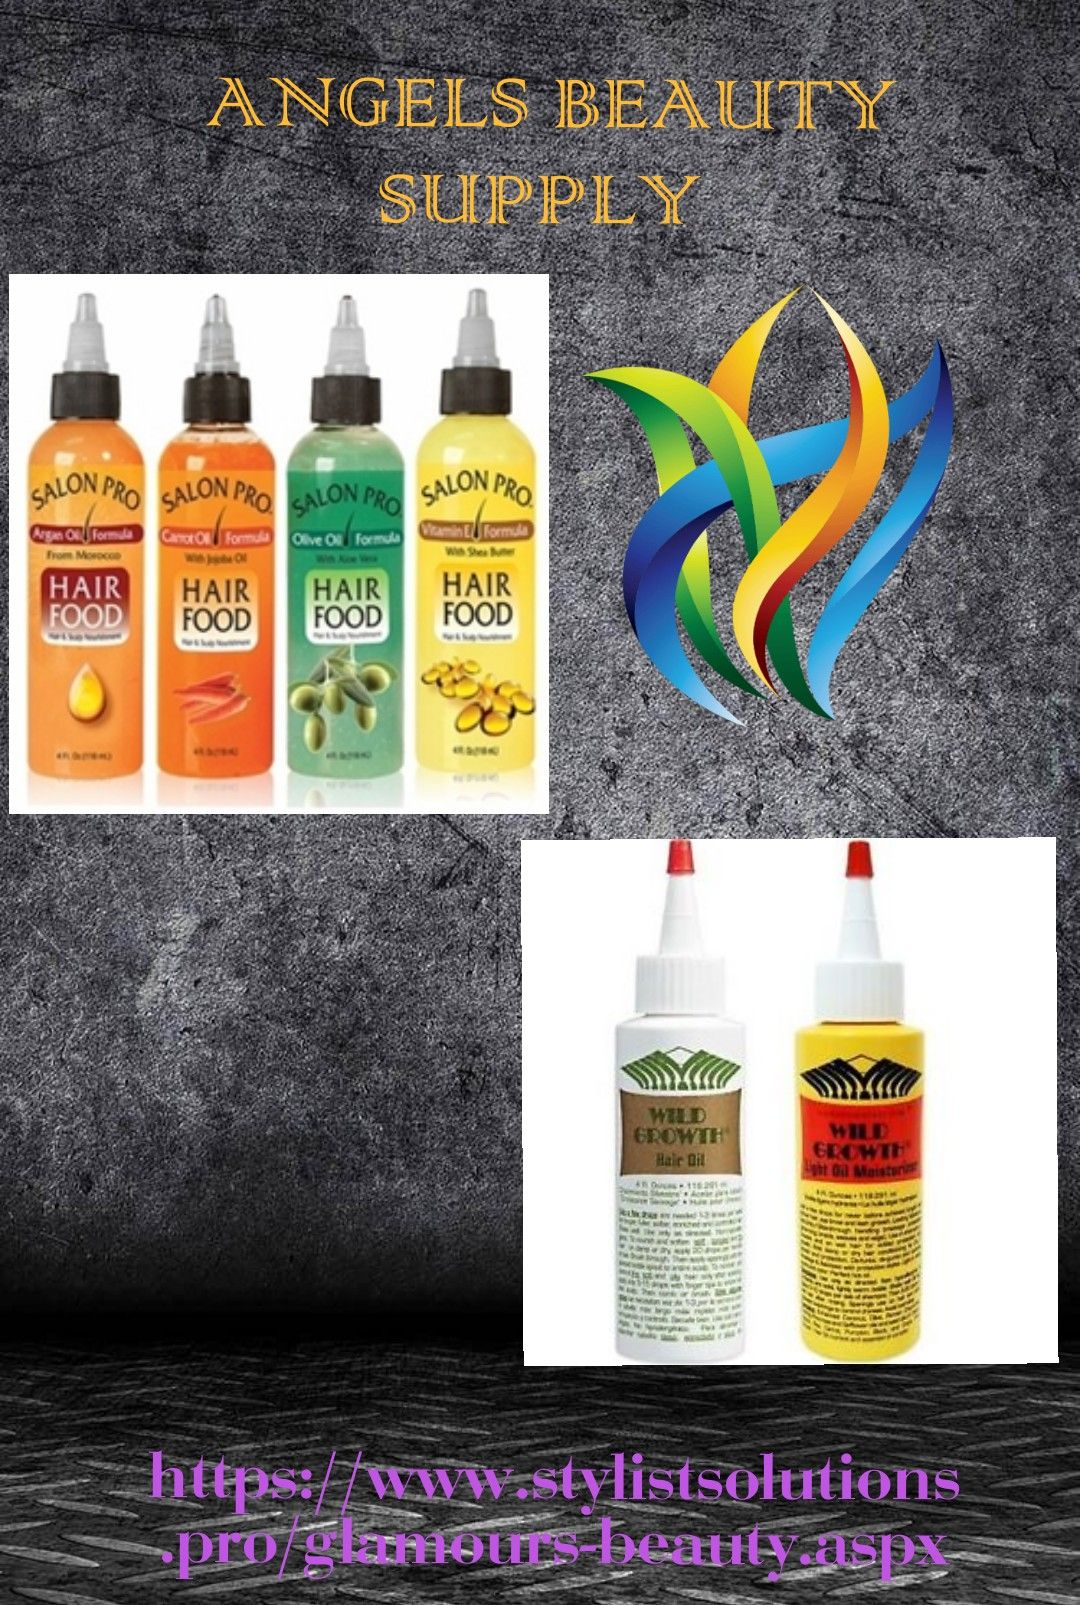 Hair products Angels beauty, Beauty supply, Wild growth